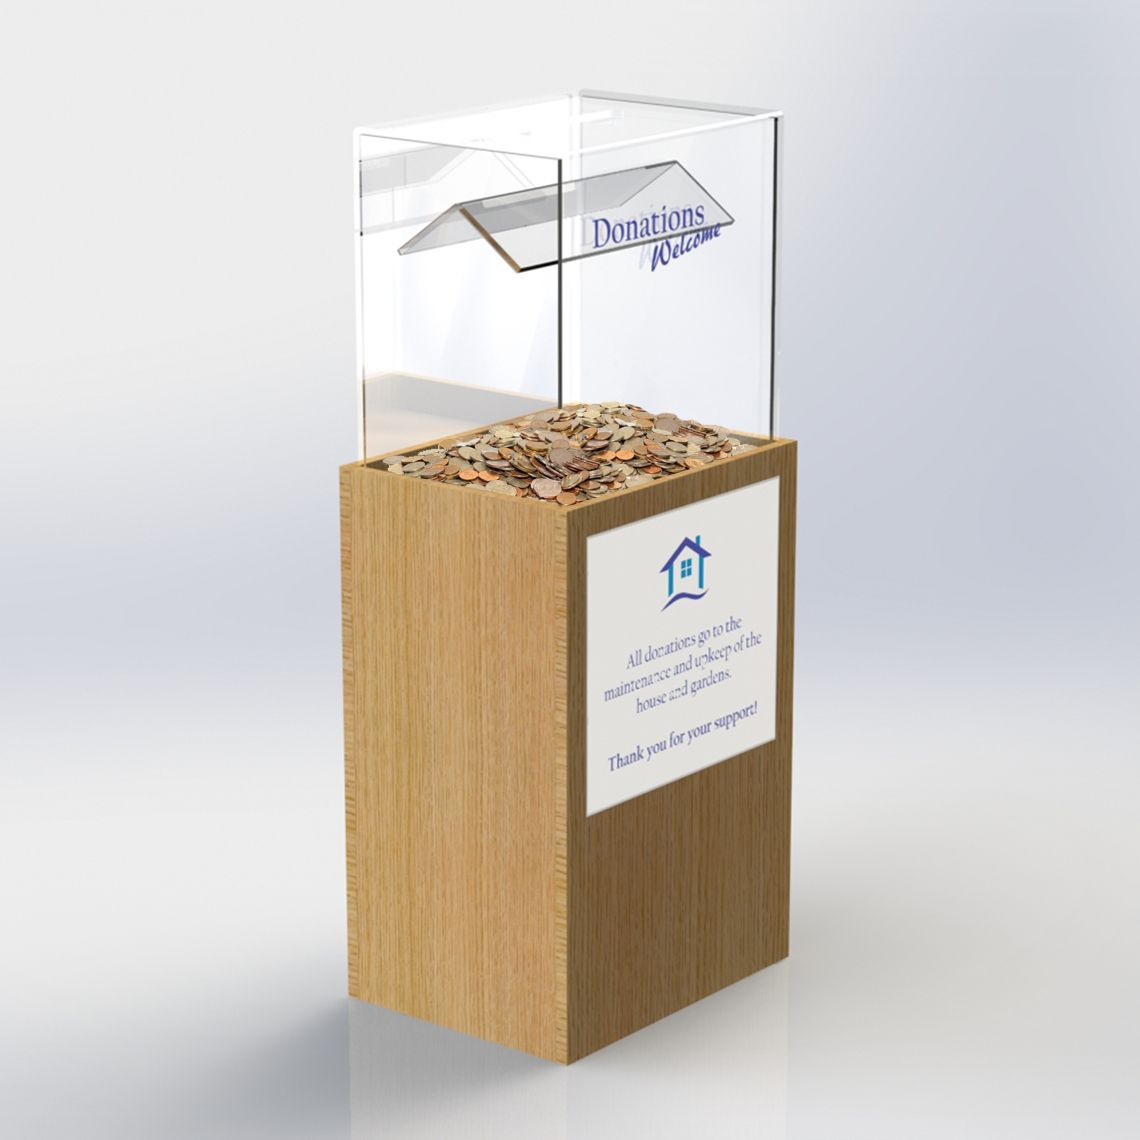 Donations Box (With images) | Donation box, Collection box ...